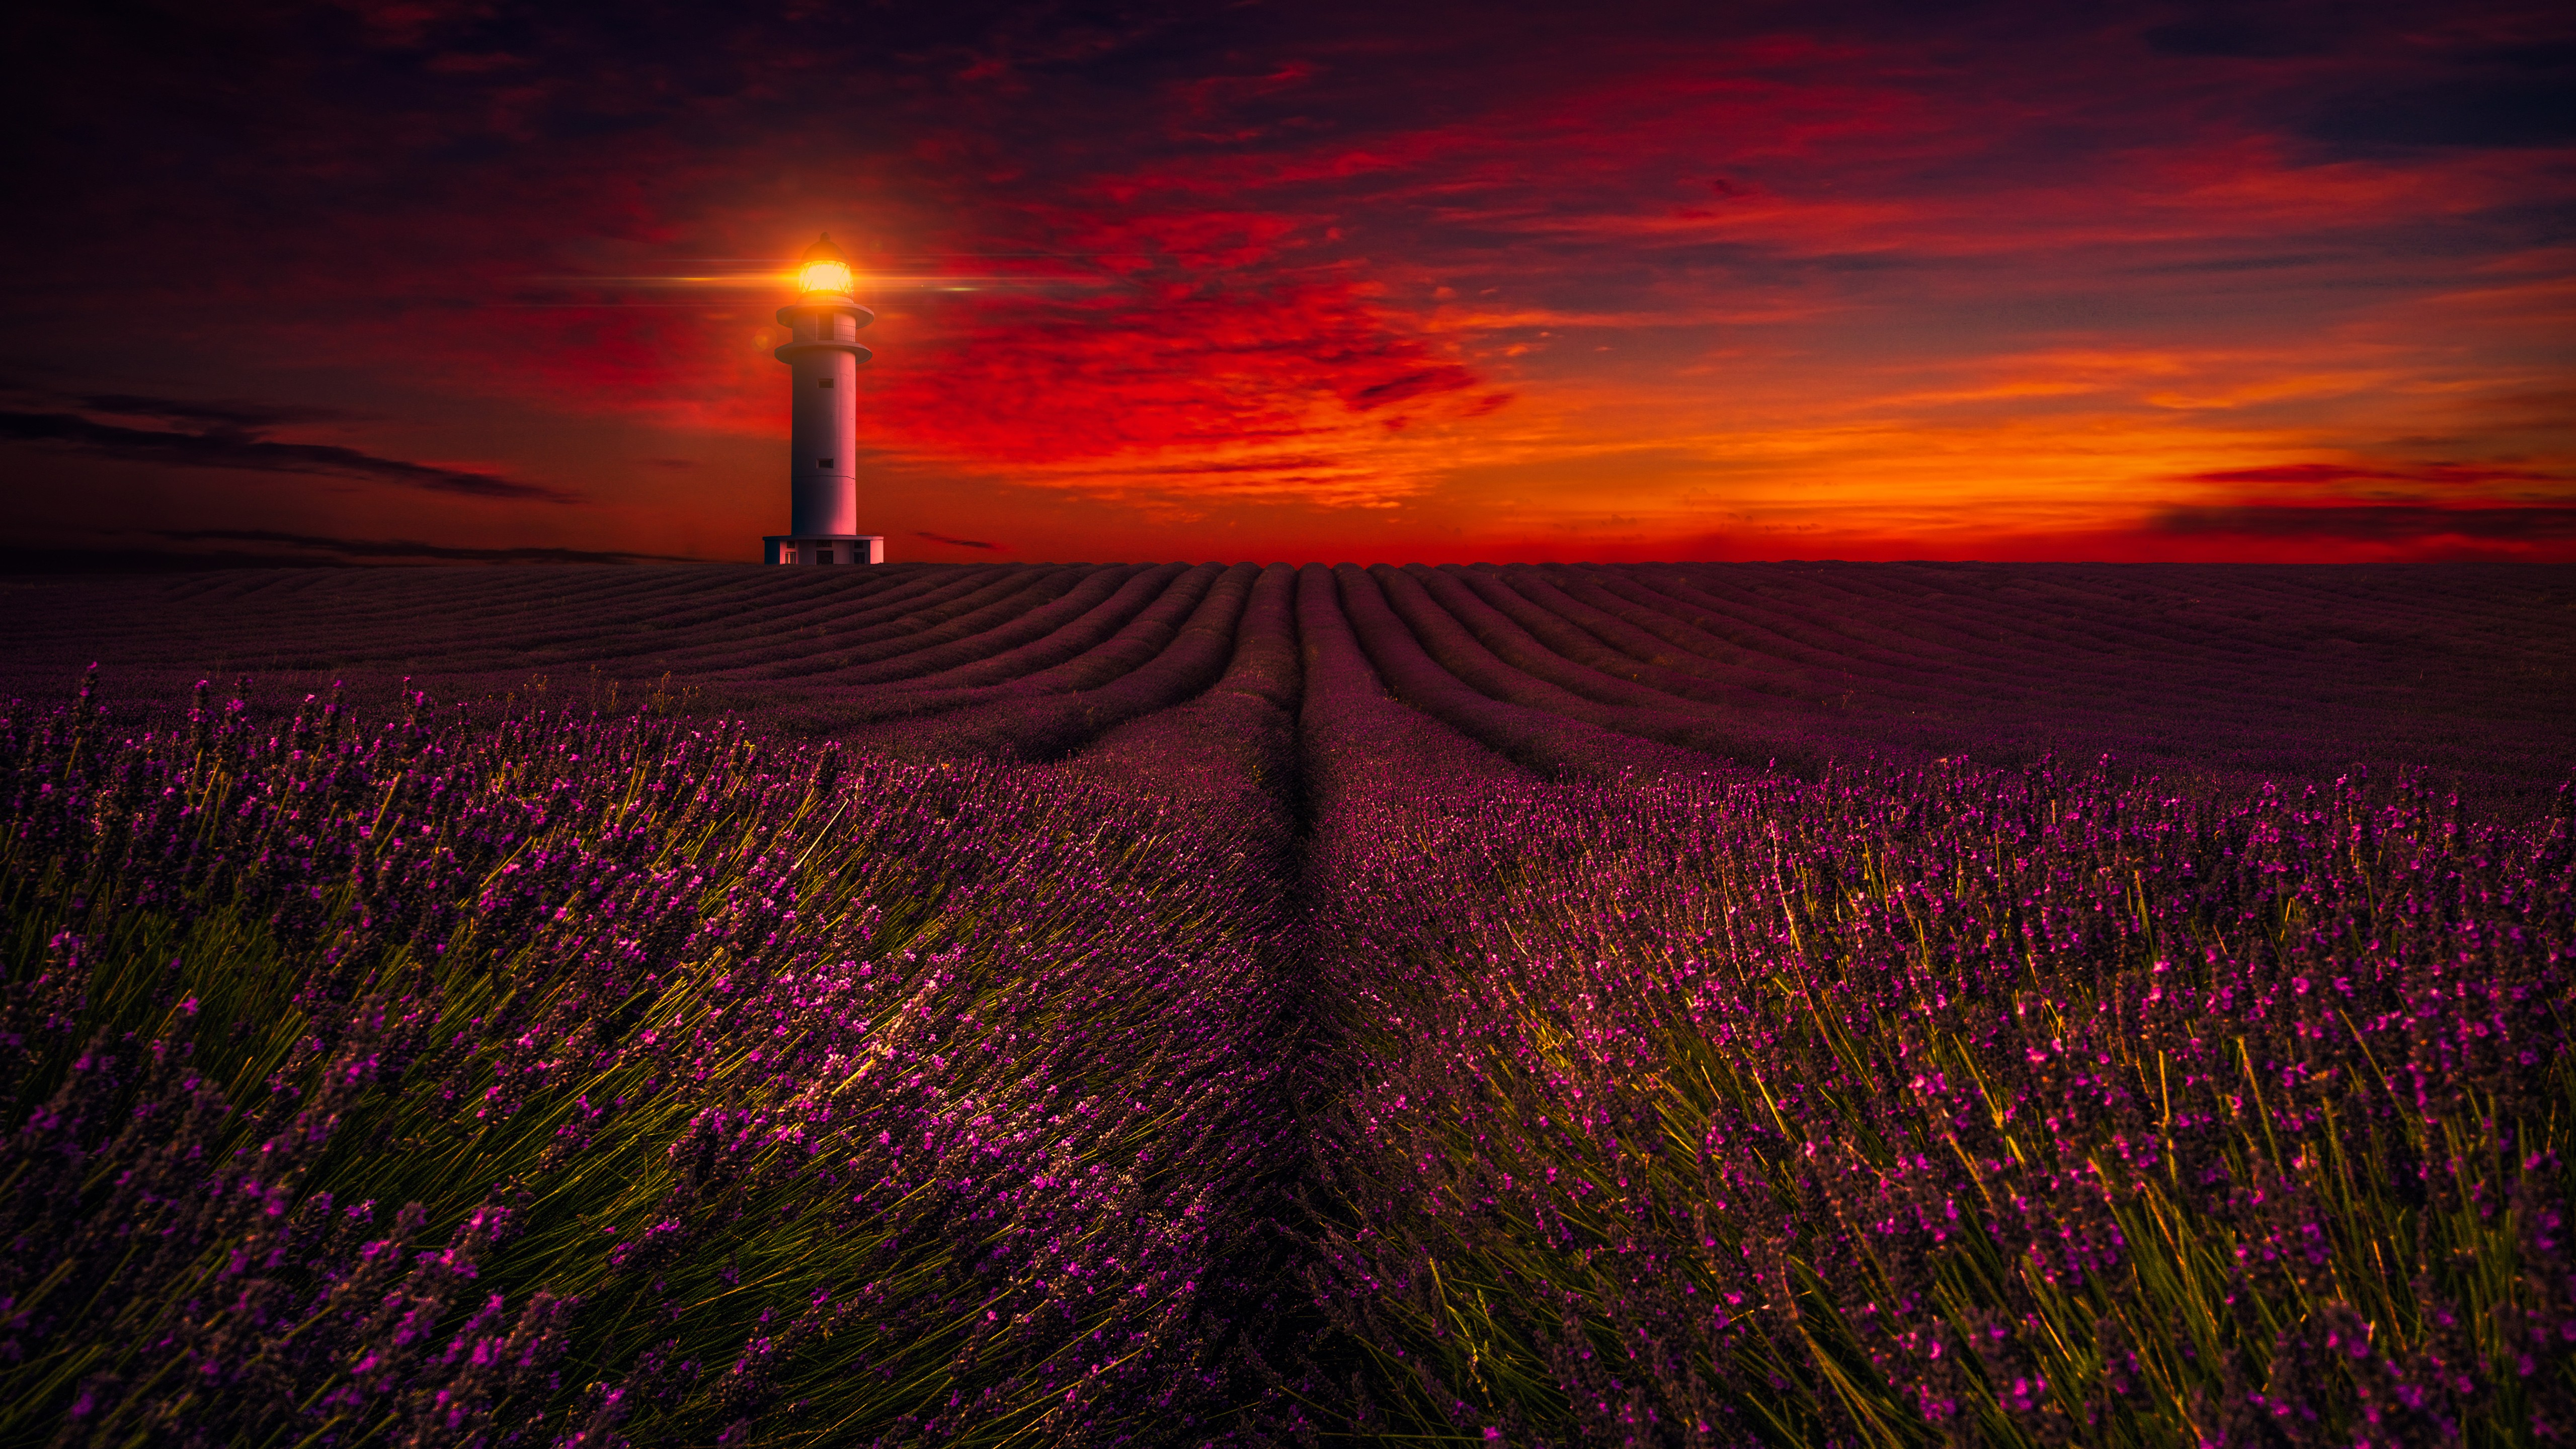 Fall Dual Monitor Wallpaper Sunset Lavender Field Lighthouse 5k Wallpapers Hd